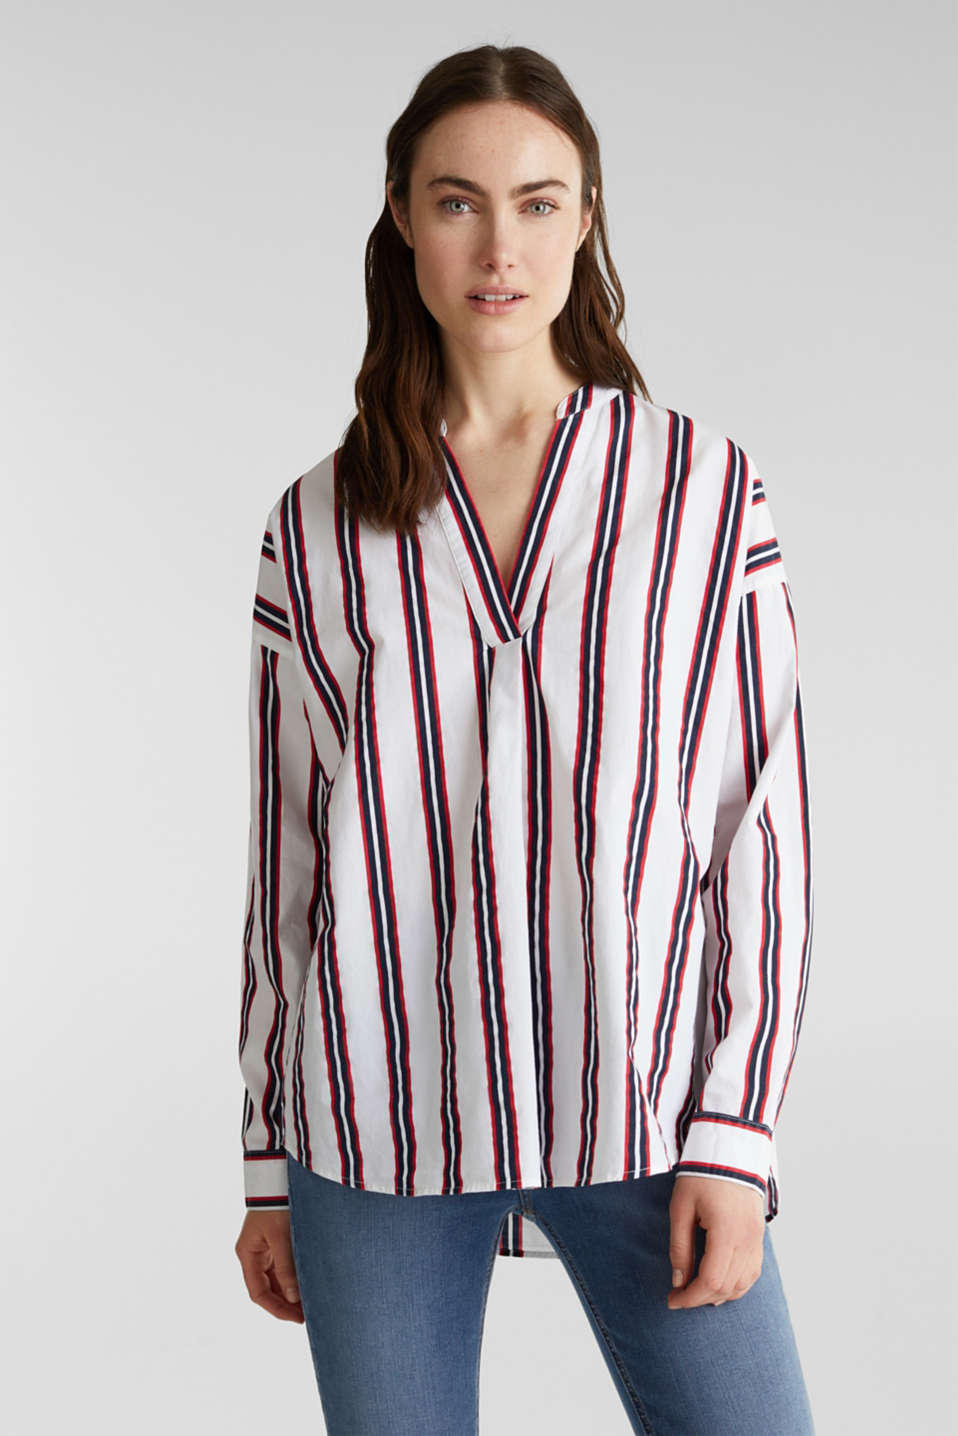 Esprit - Henley blouse with stripes, 100% cotton